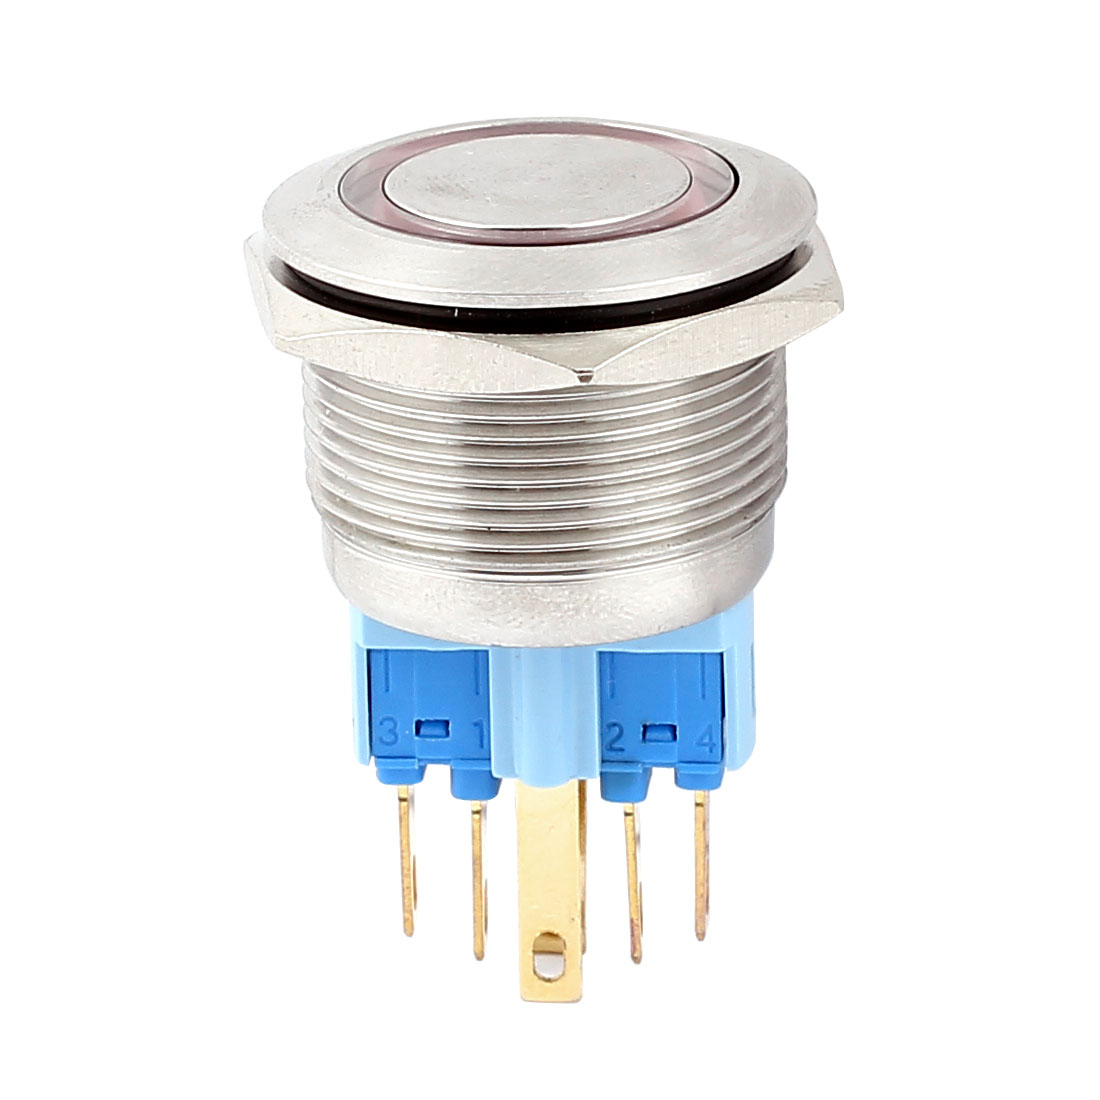 DC 12V 18mm Red LED Light 22mm Mounted Thread 6 Pins DPST NO/NC Momentary Push Button Switch